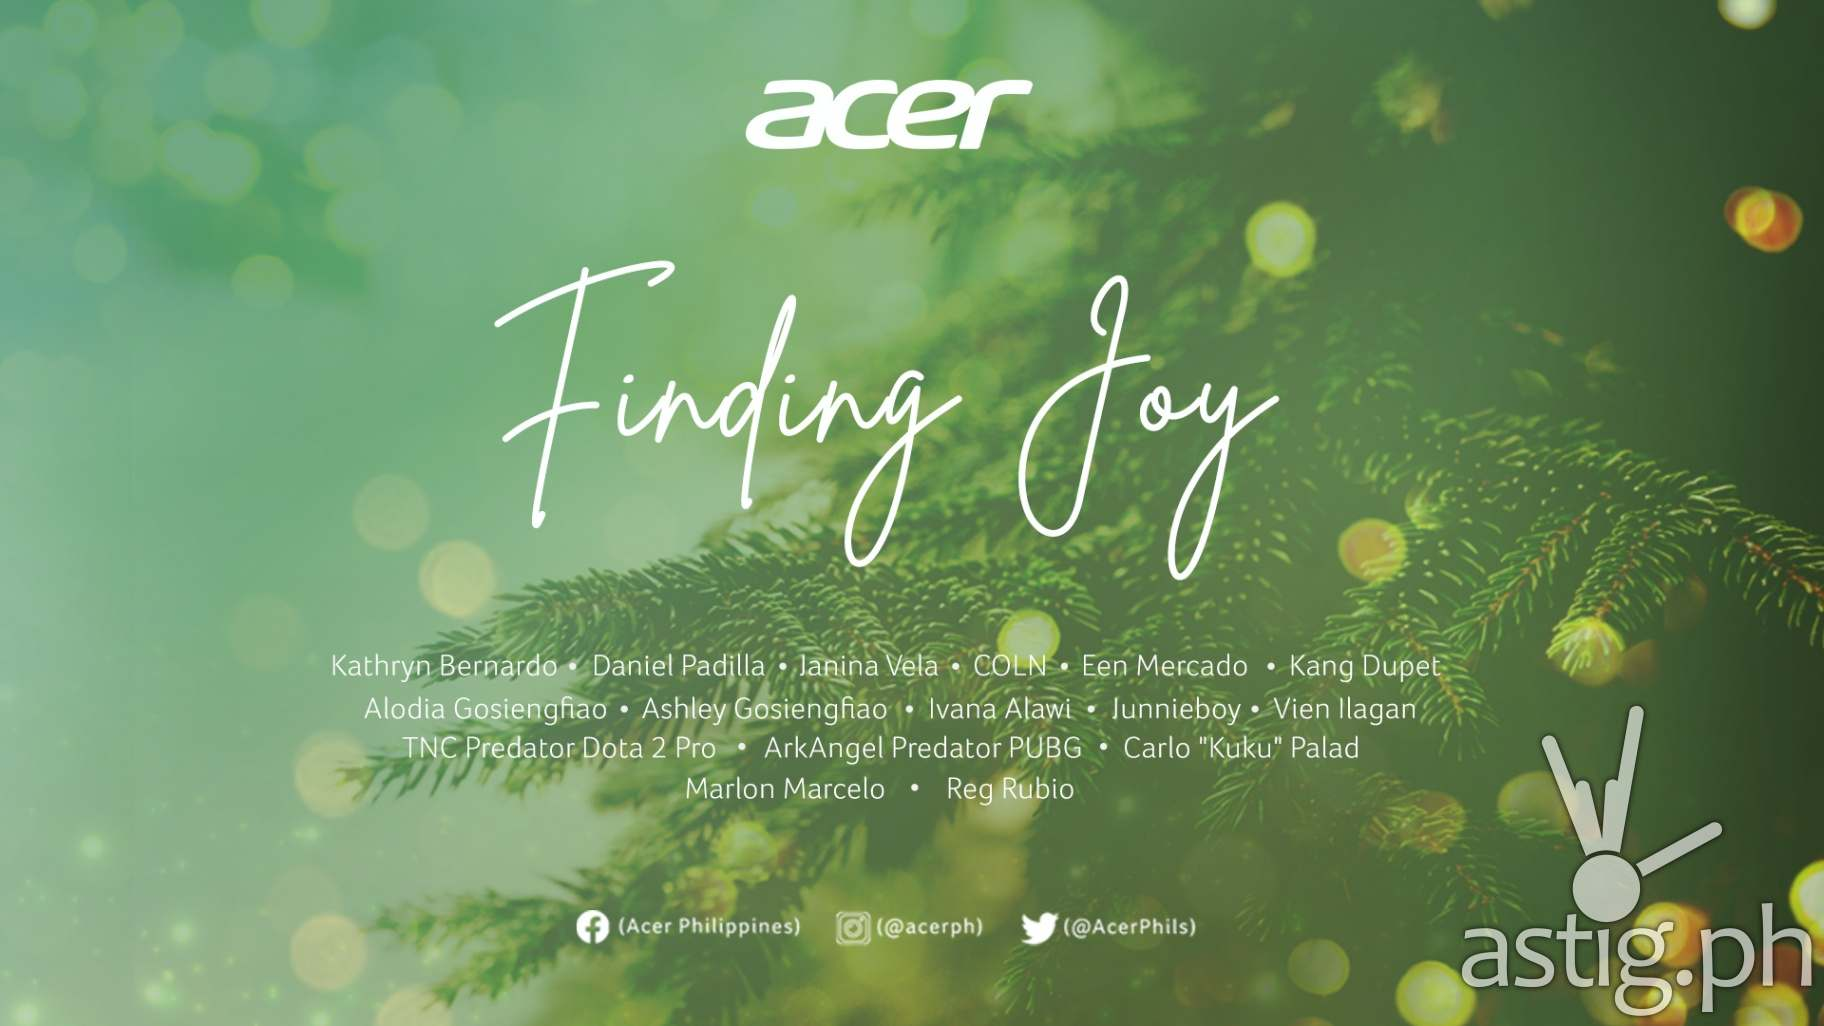 Acer Philippines launches Finding Joy